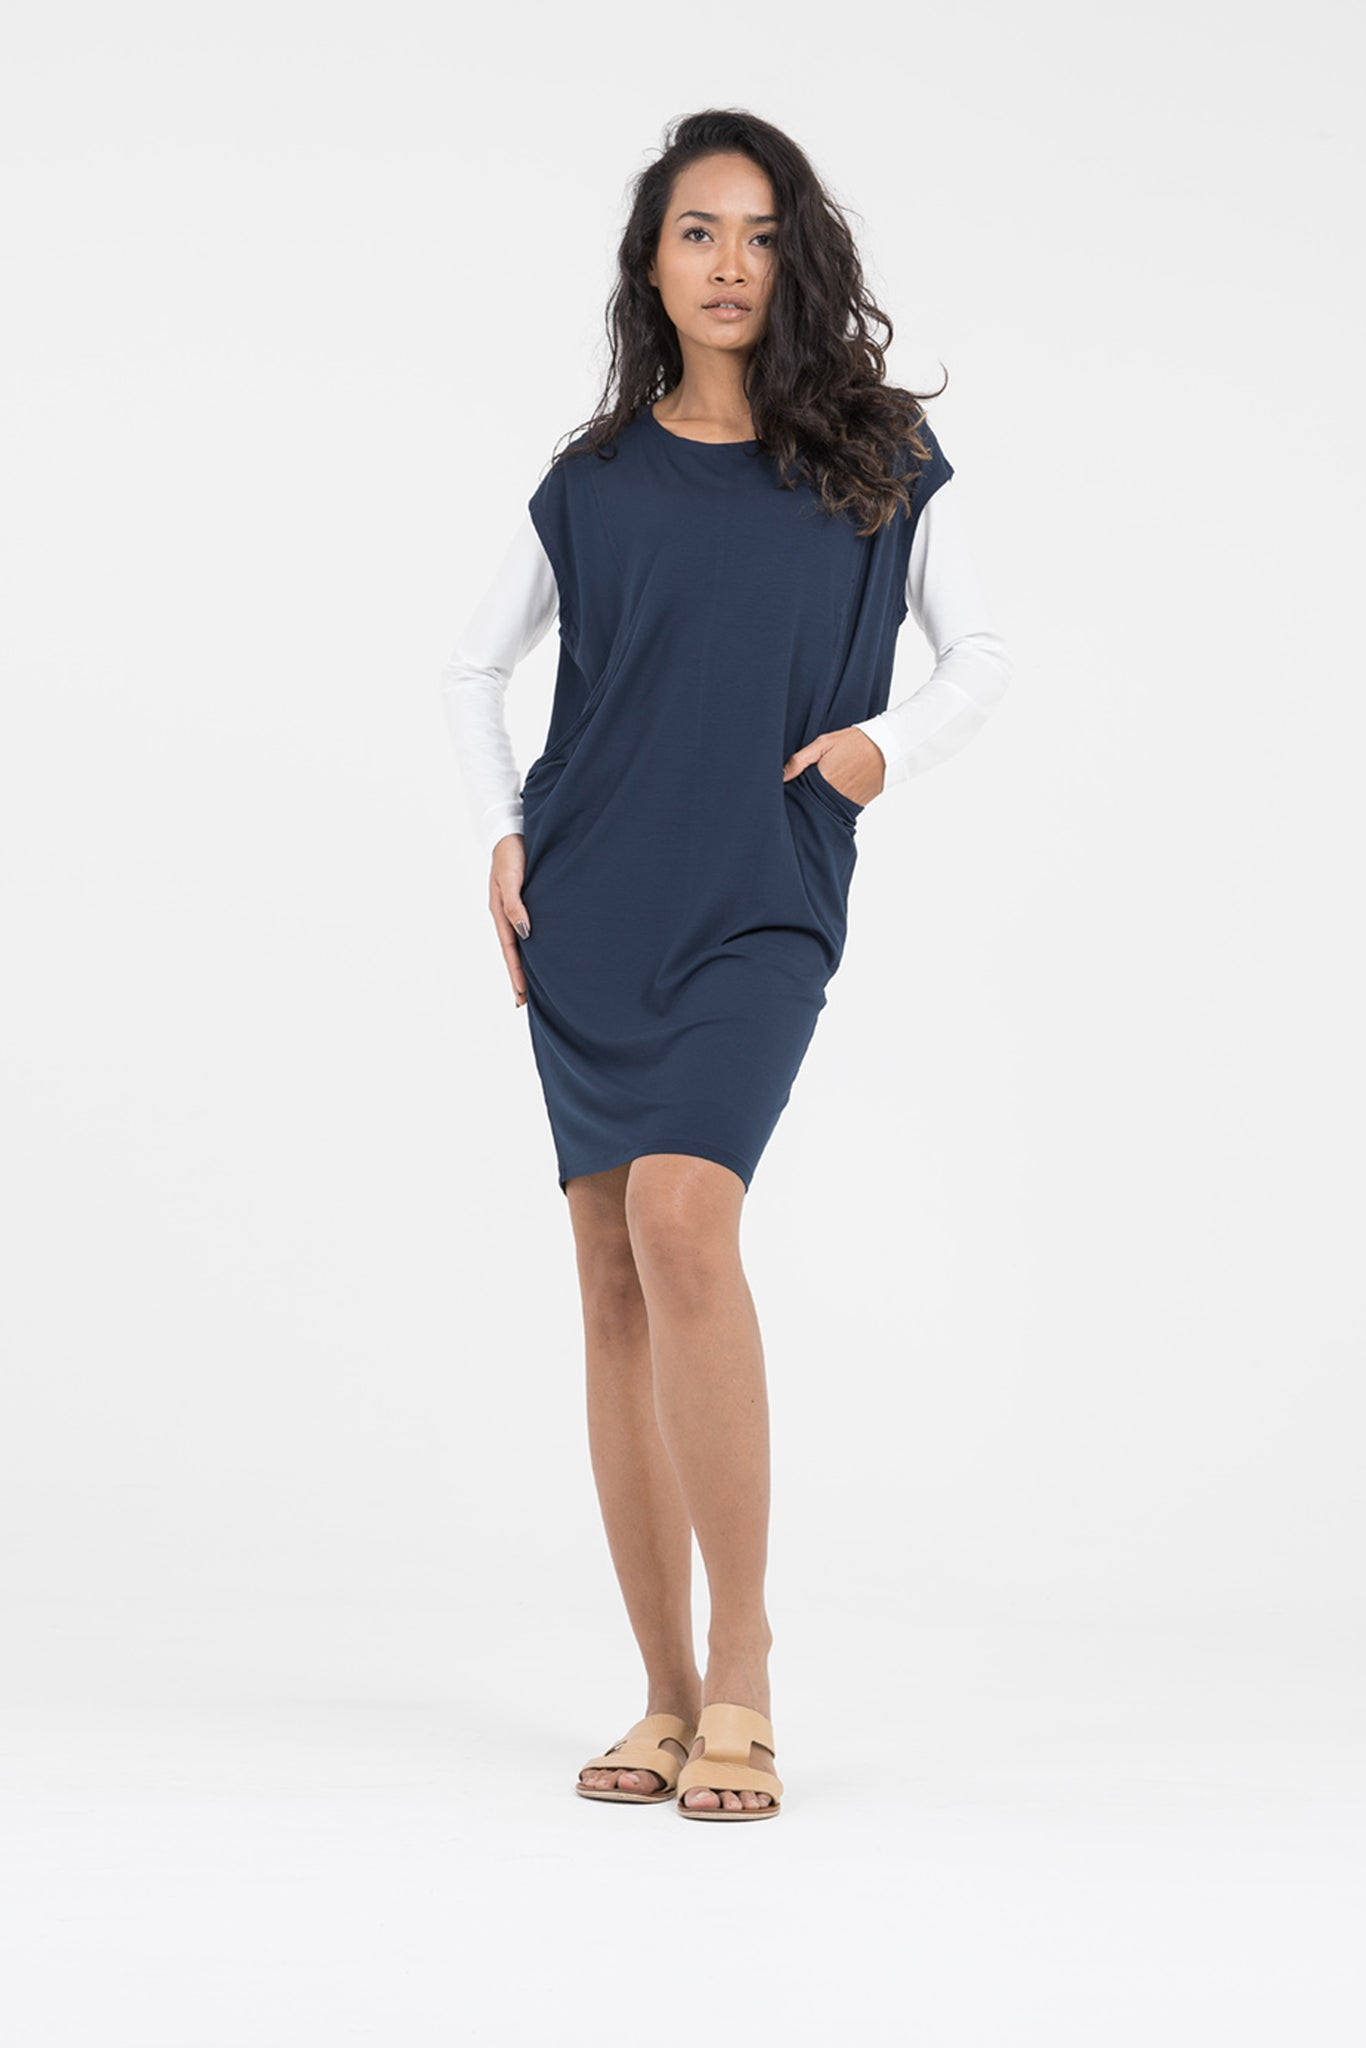 Ladies organic dresses - Billie tunic in navy by Donnah